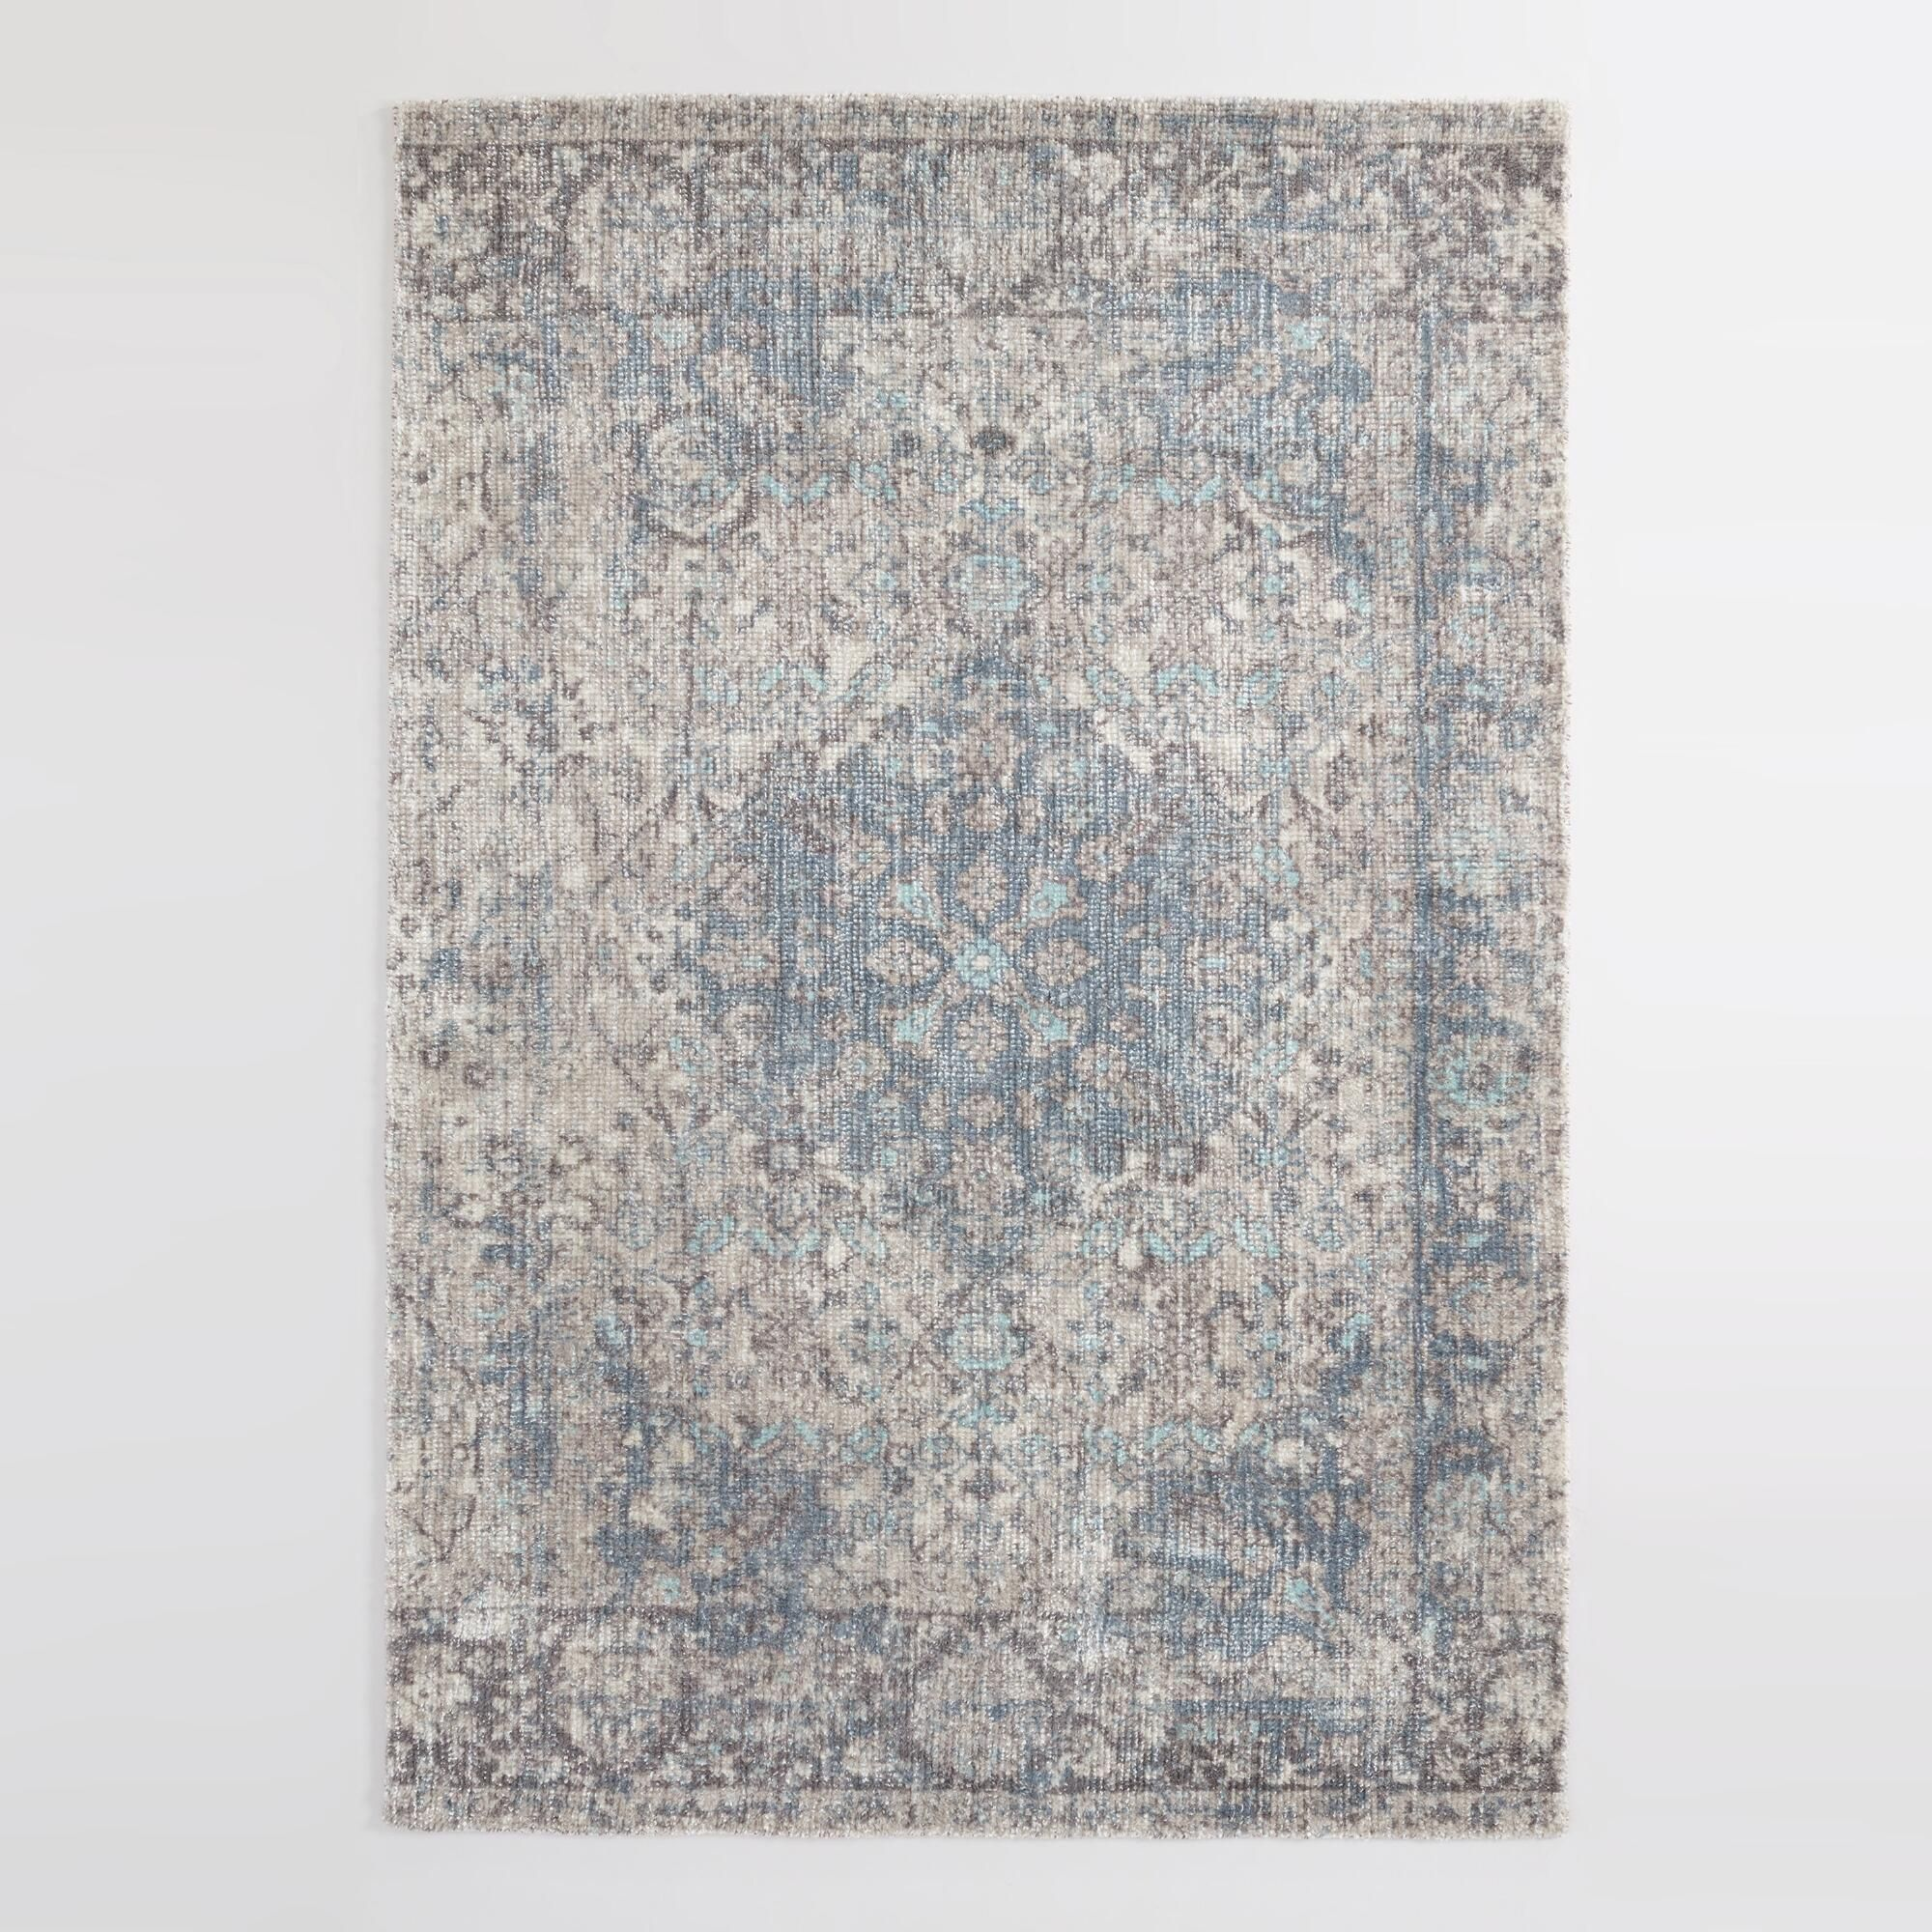 Blue And Gray Persian Style Cyprus Area Rug 8 X 10 By World